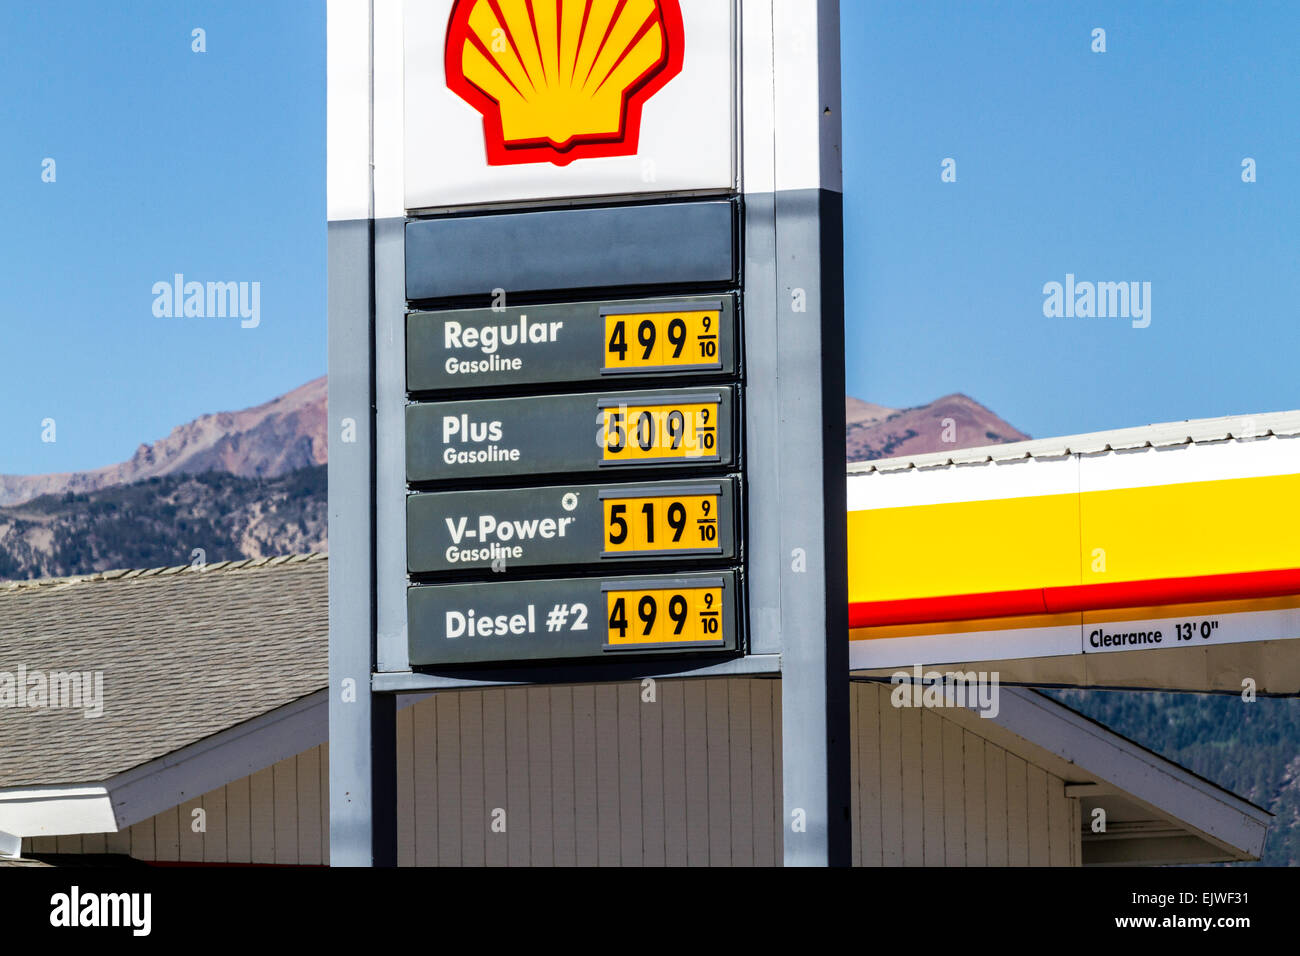 Diesel Gas Station Near Me >> The Shell Gas Station In Bridgeport California With Very High Gas